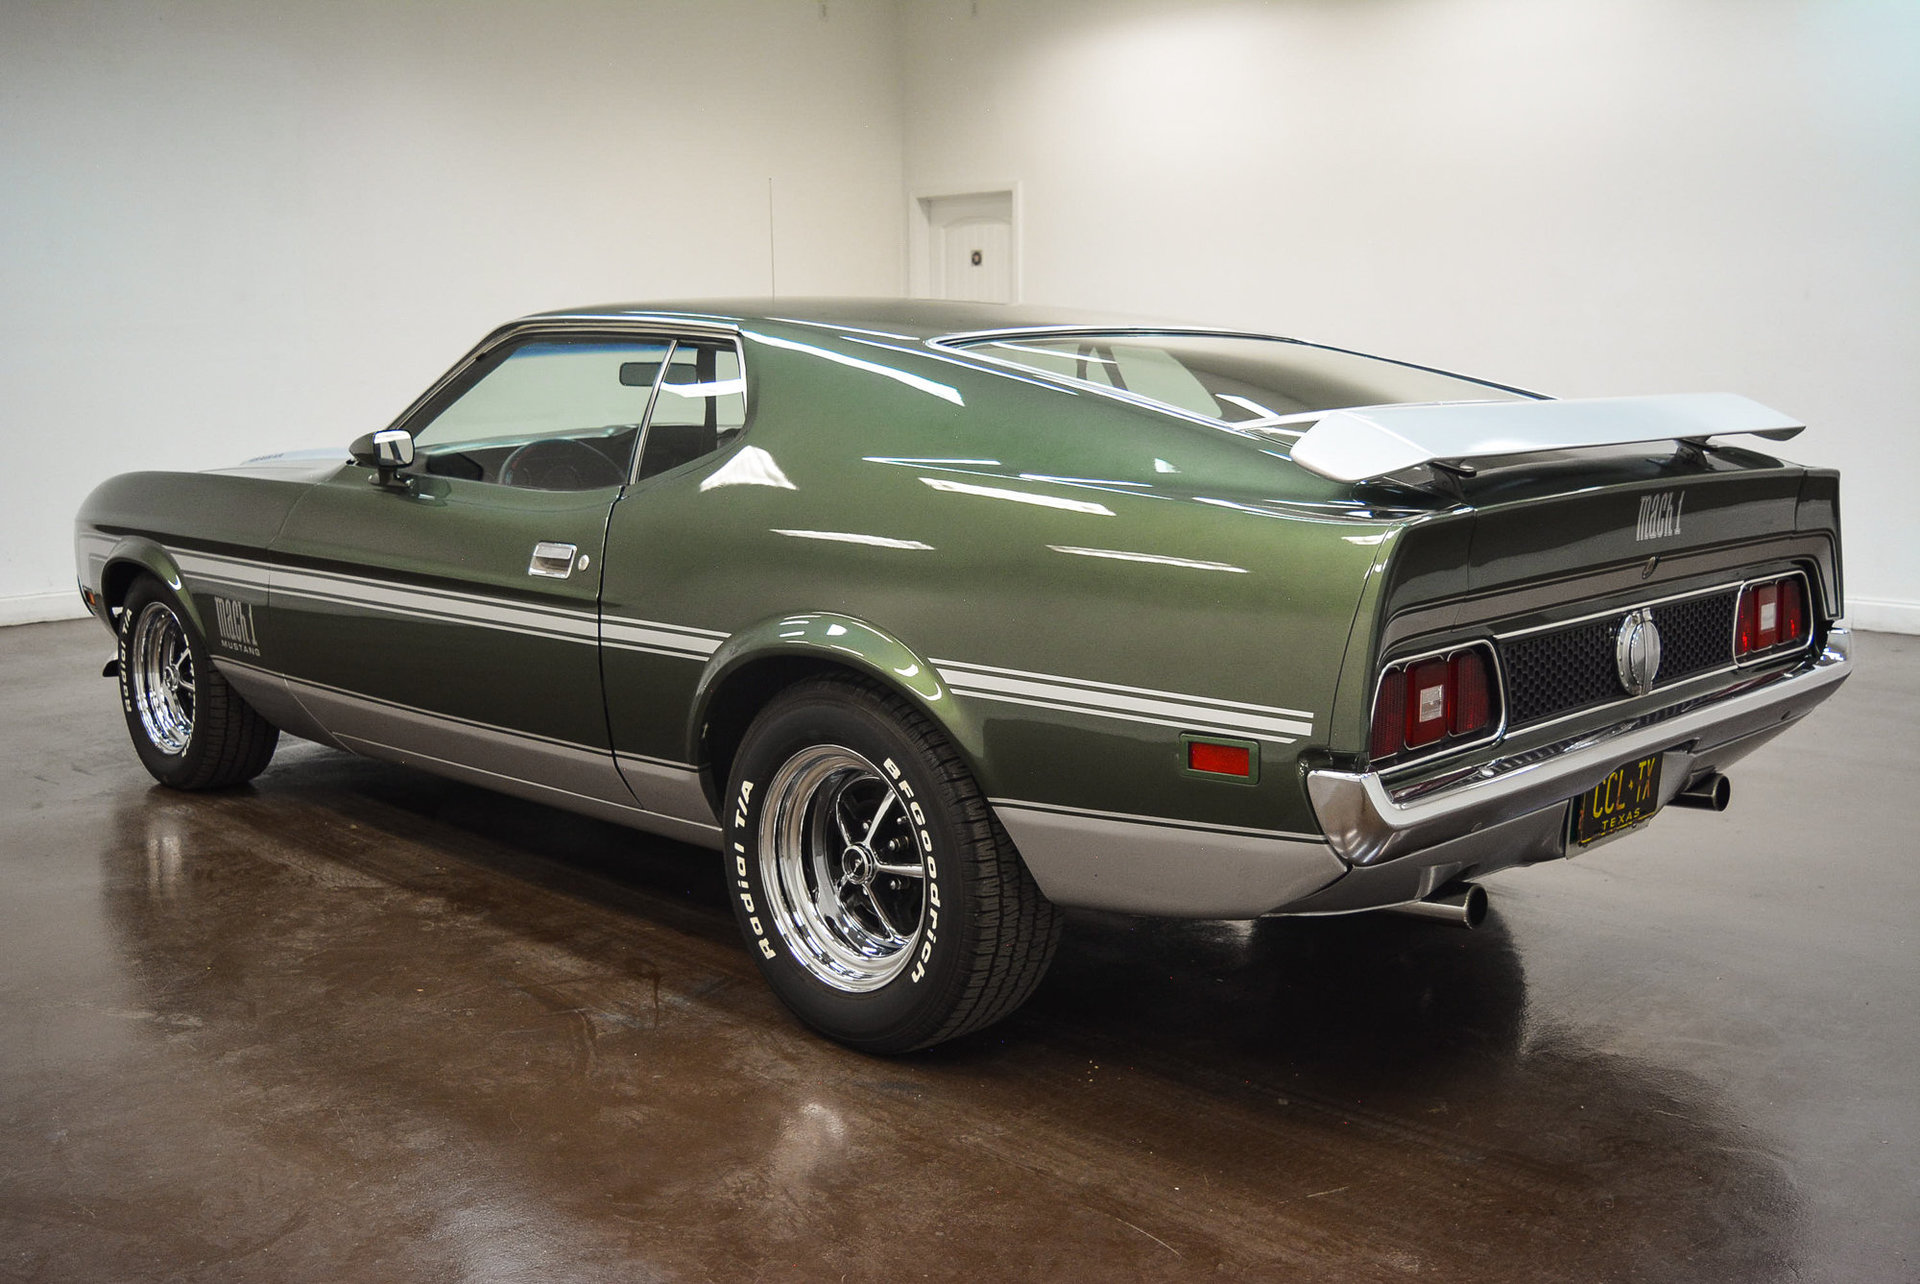 1971 ford mustang classic car liquidators in sherman tx. Black Bedroom Furniture Sets. Home Design Ideas